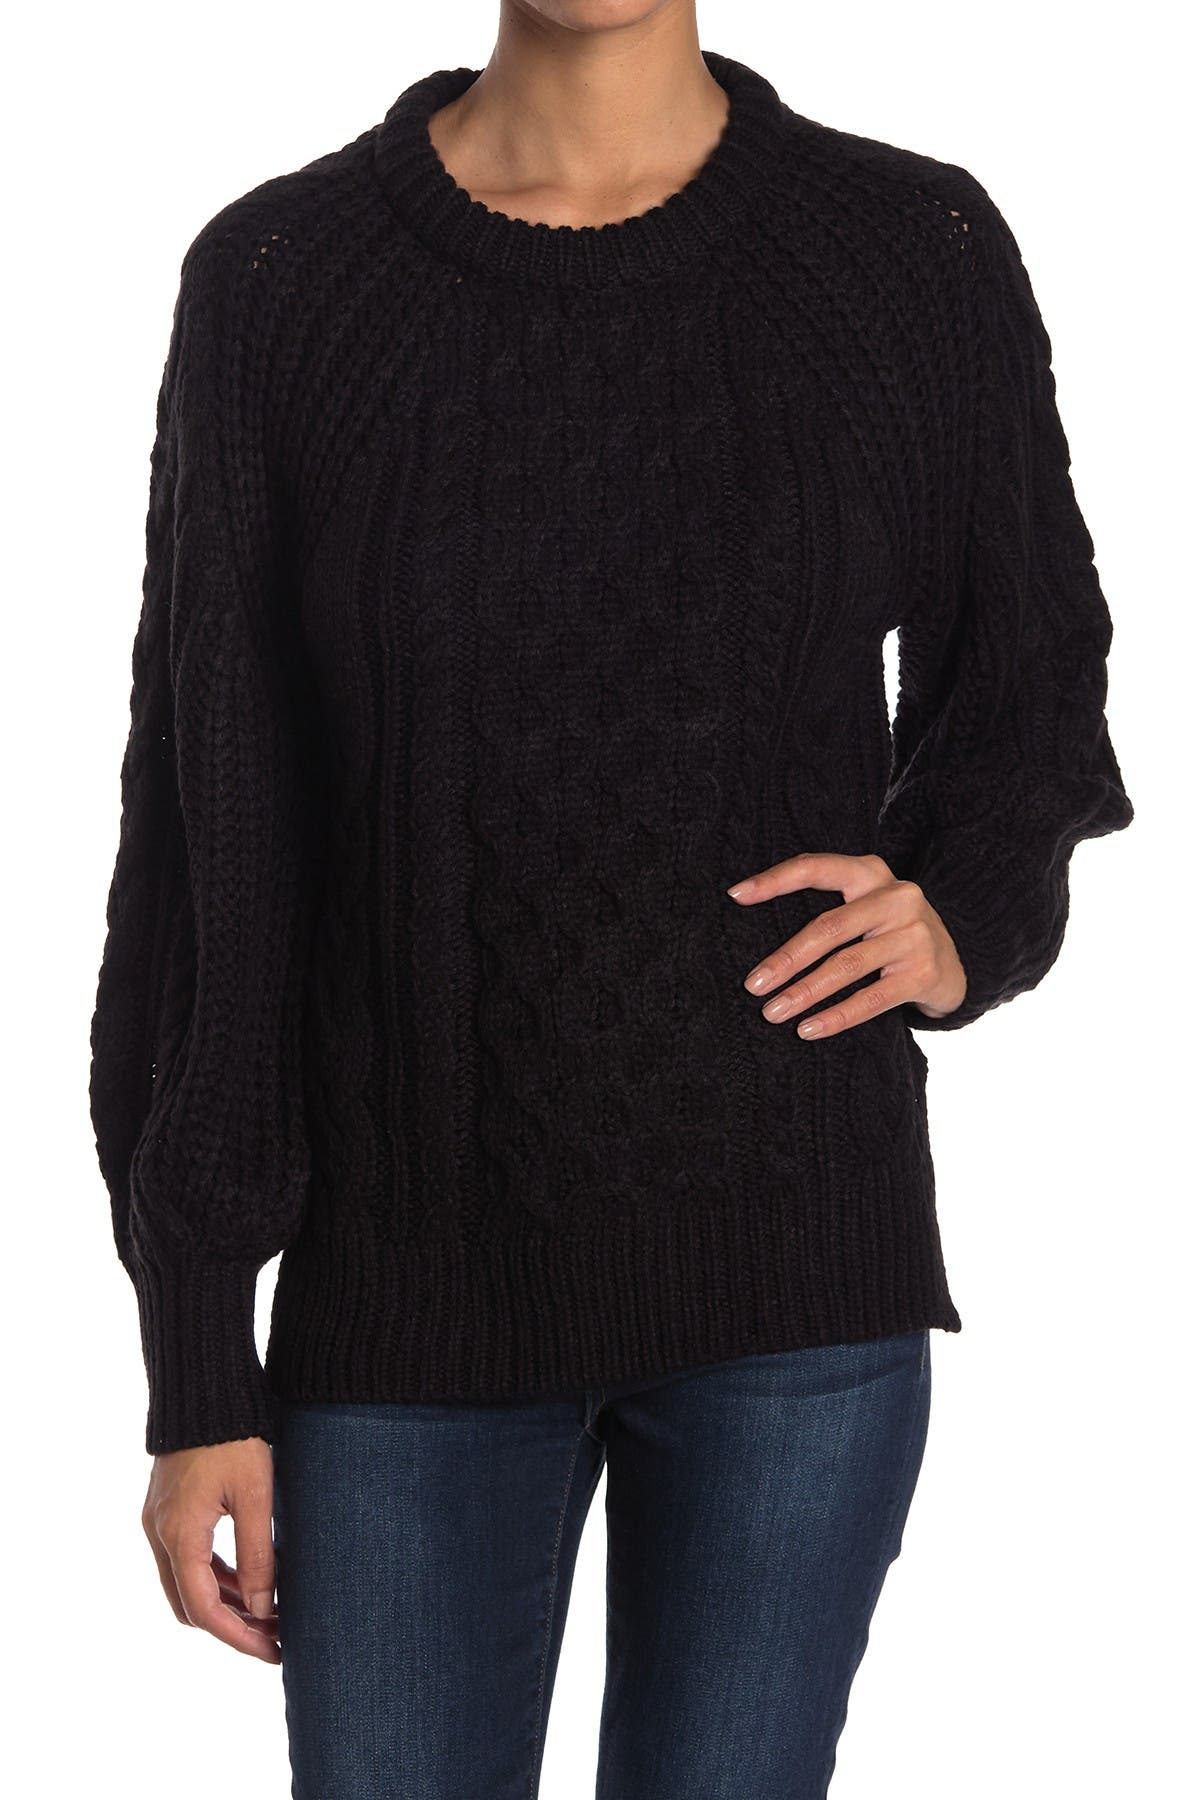 Image of RAG SUPPLY Cable Knit Balloon Sleeve Pullover Sweater